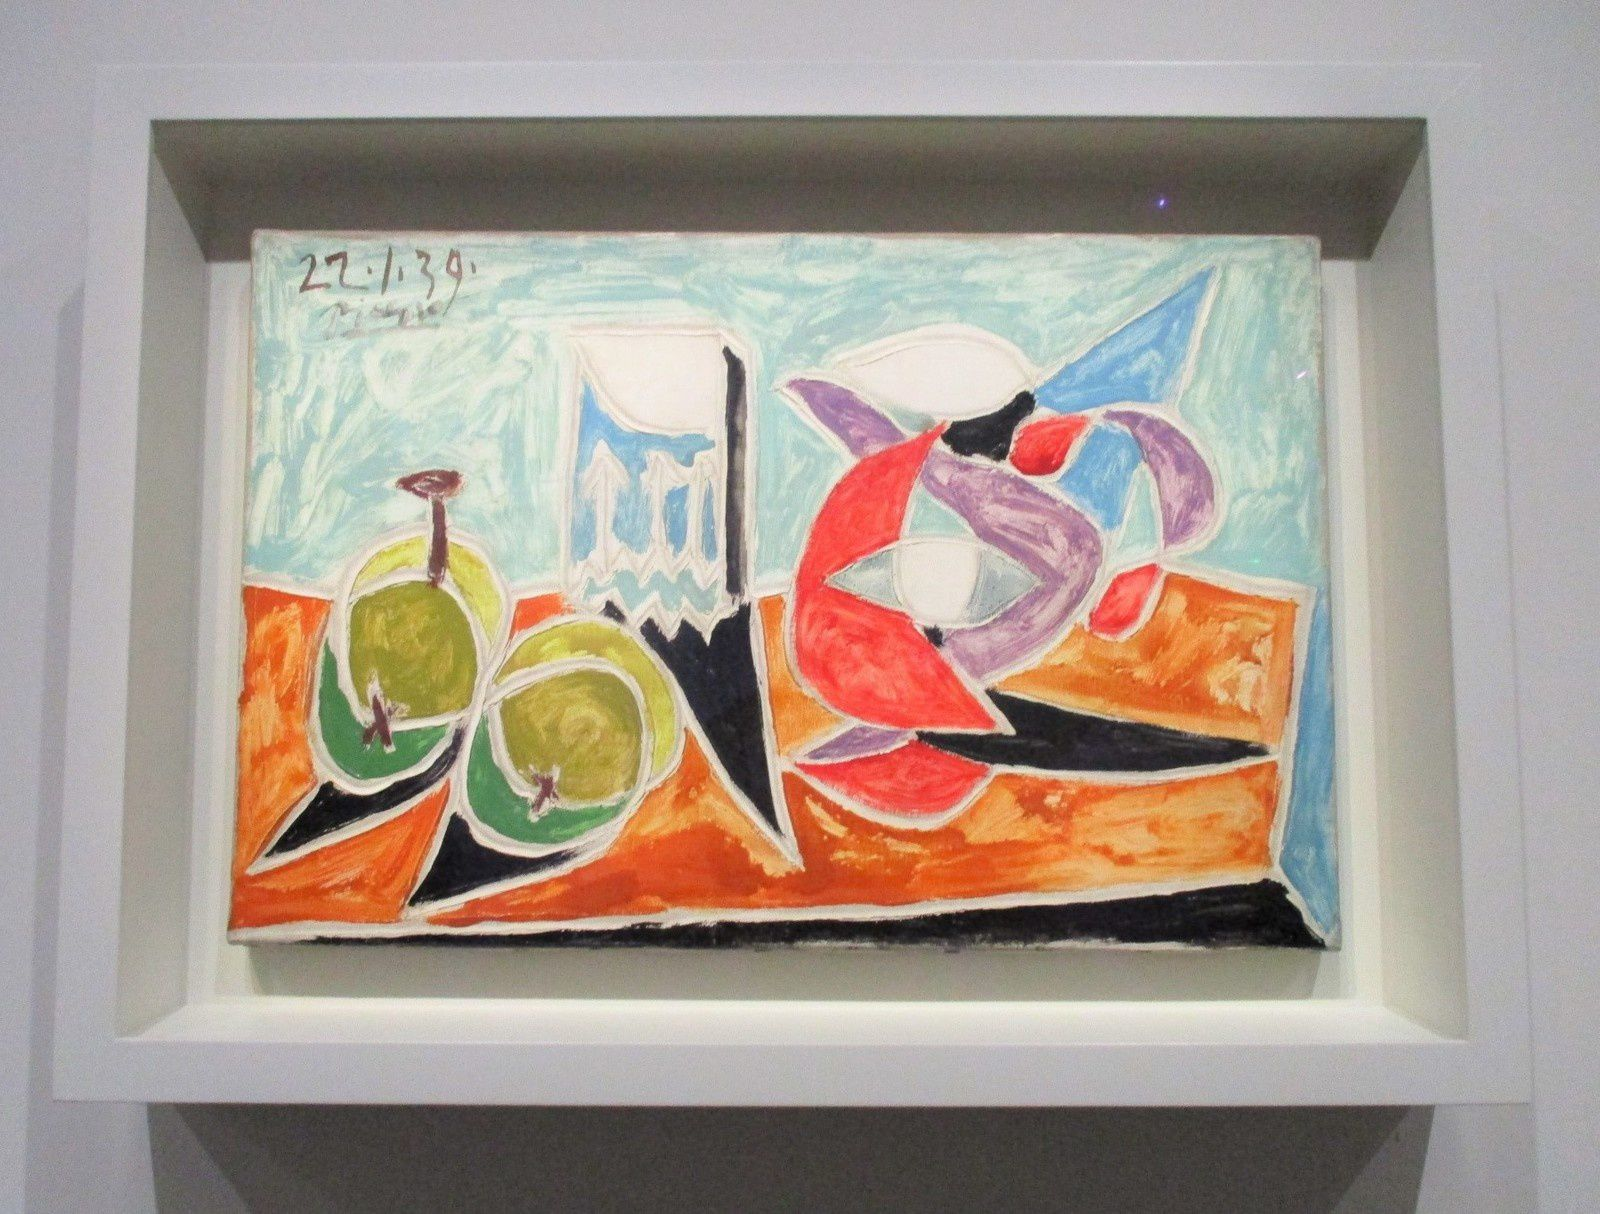 Nature morte : fruits et pots - Pablo Picasso, 1939